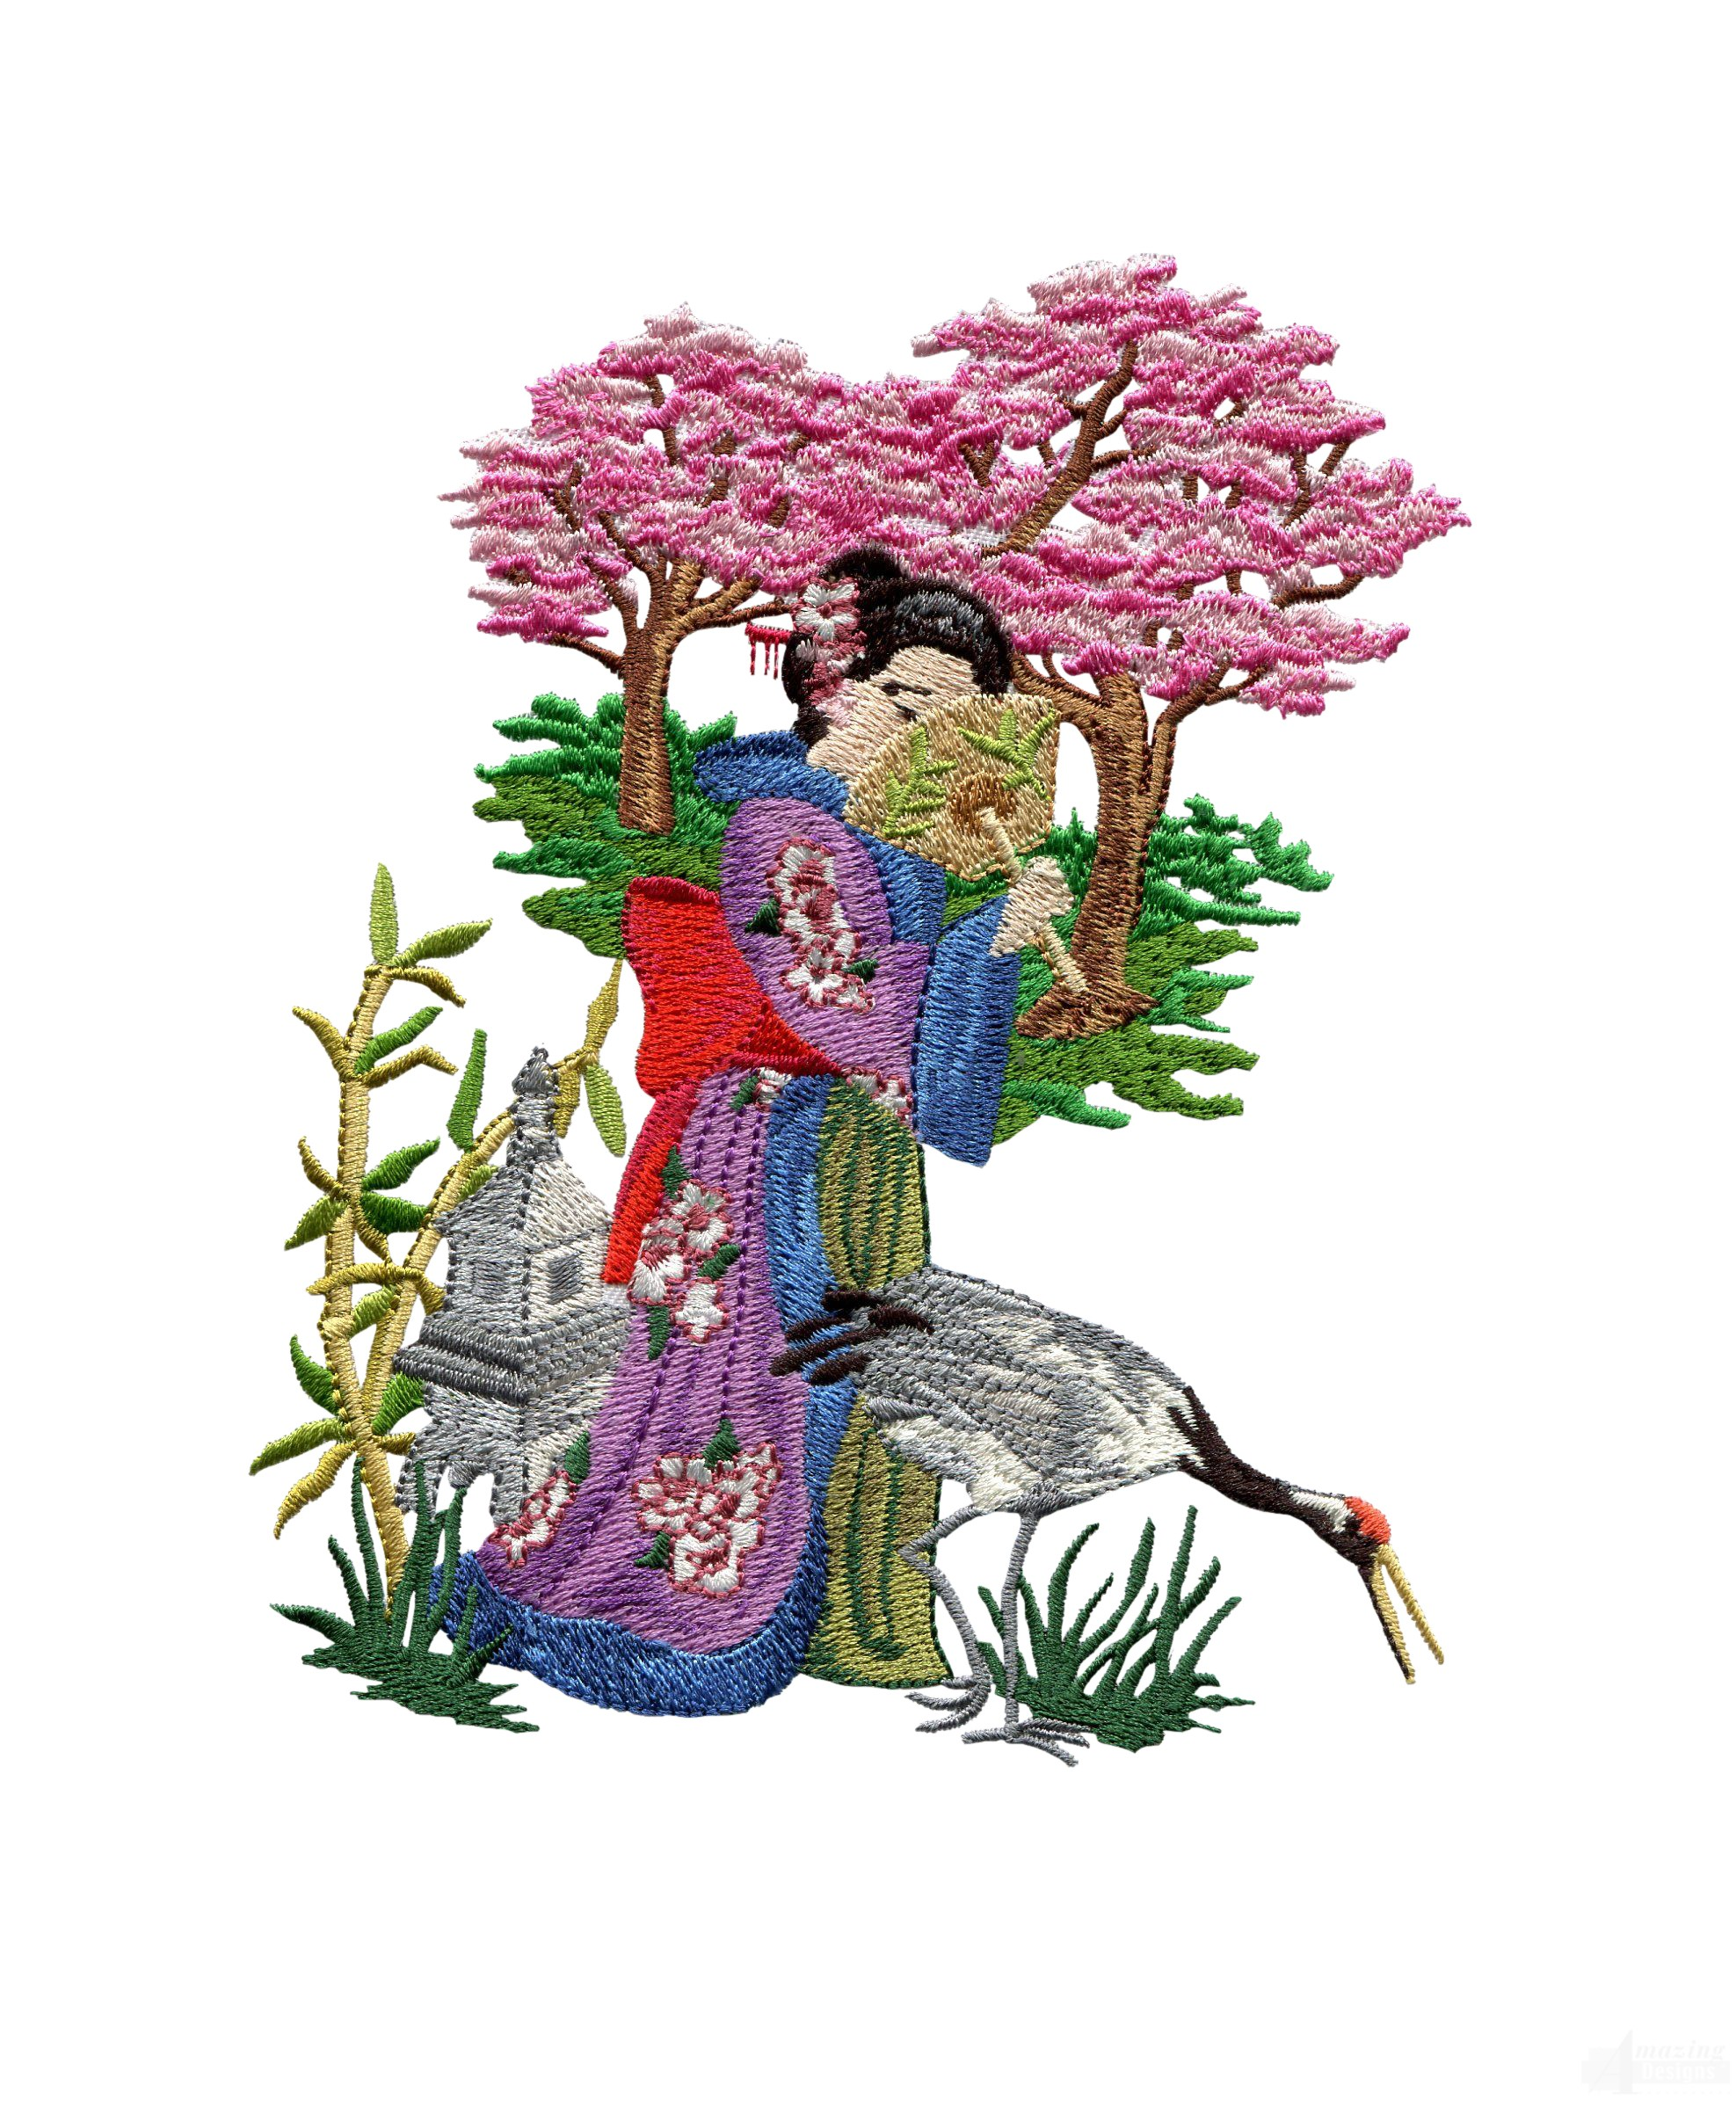 Swngg113 a geishas garden embroidery design for Garden embroidery designs free